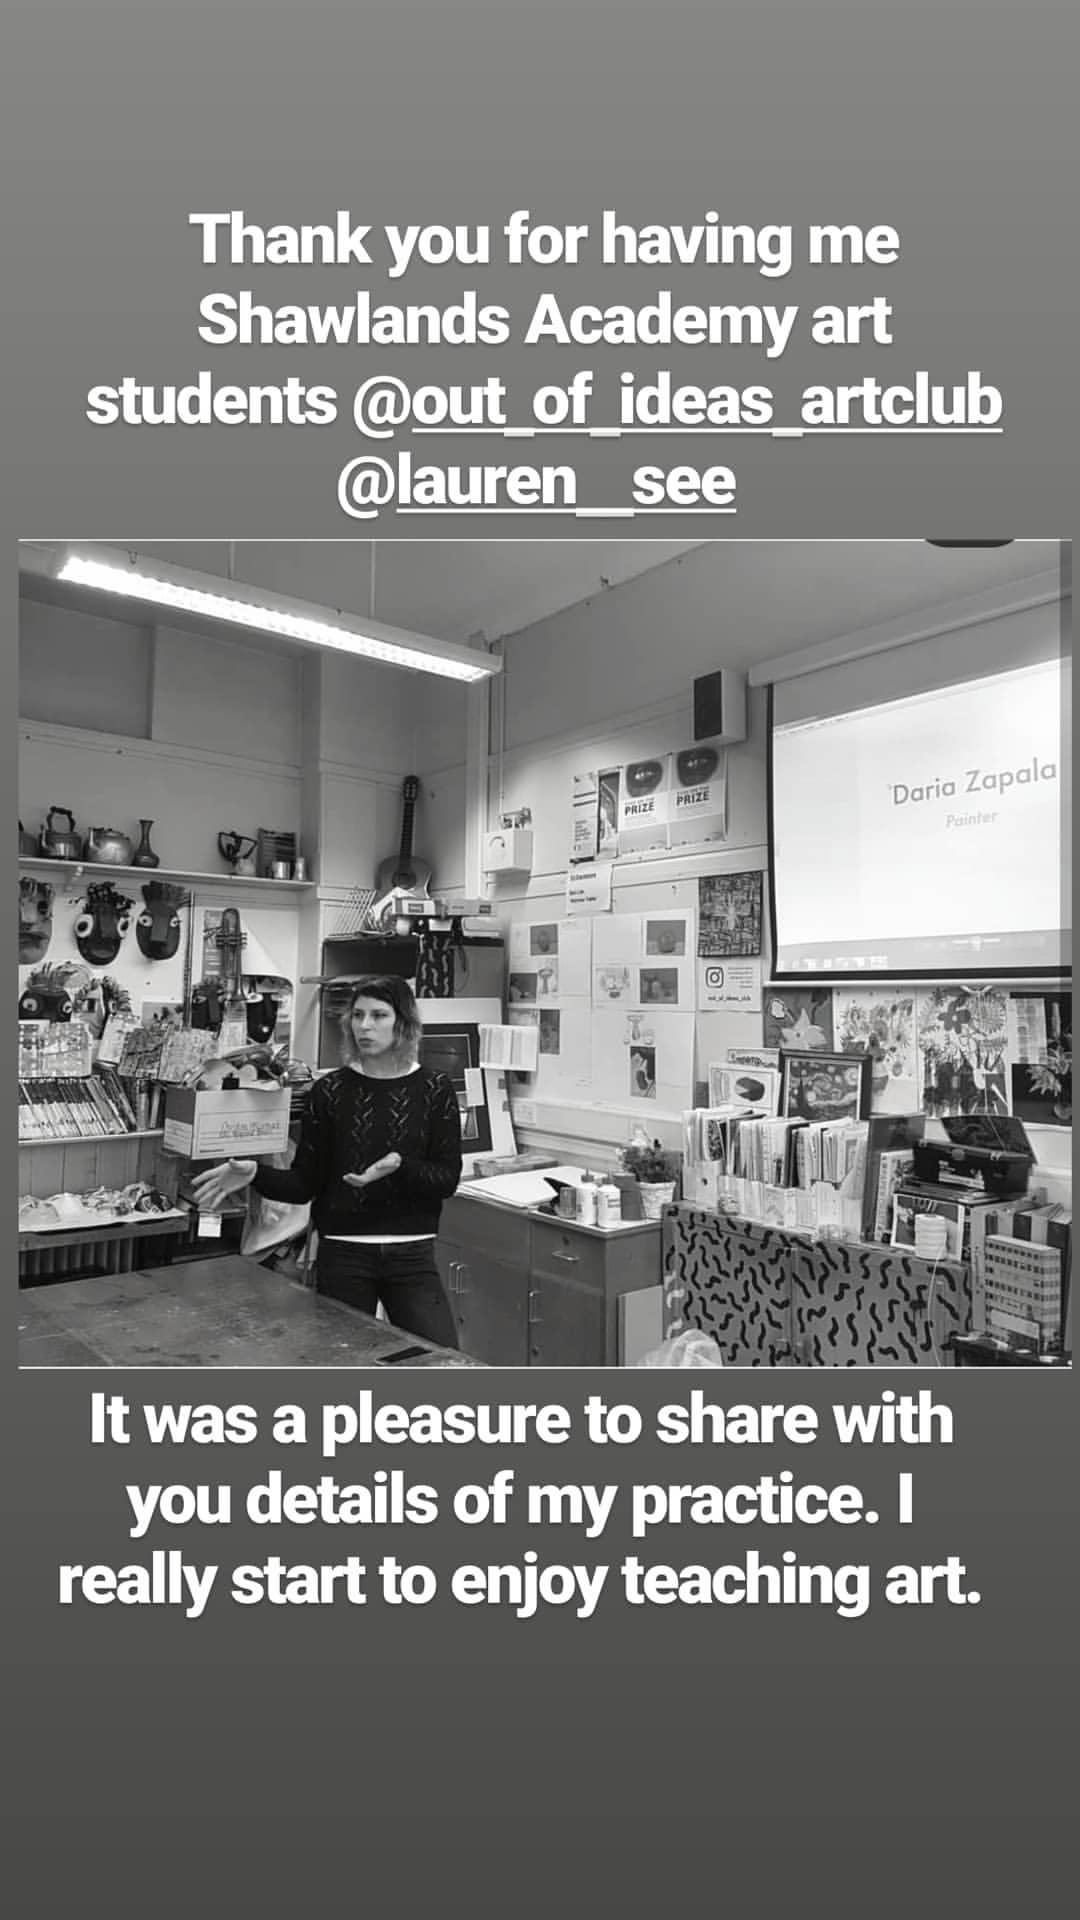 Artist Talk - I was asked to do an artist talk about my practice for Shawlands Academy, Glasgow, Scotland. Talk took place on Friday 8th March 2019.